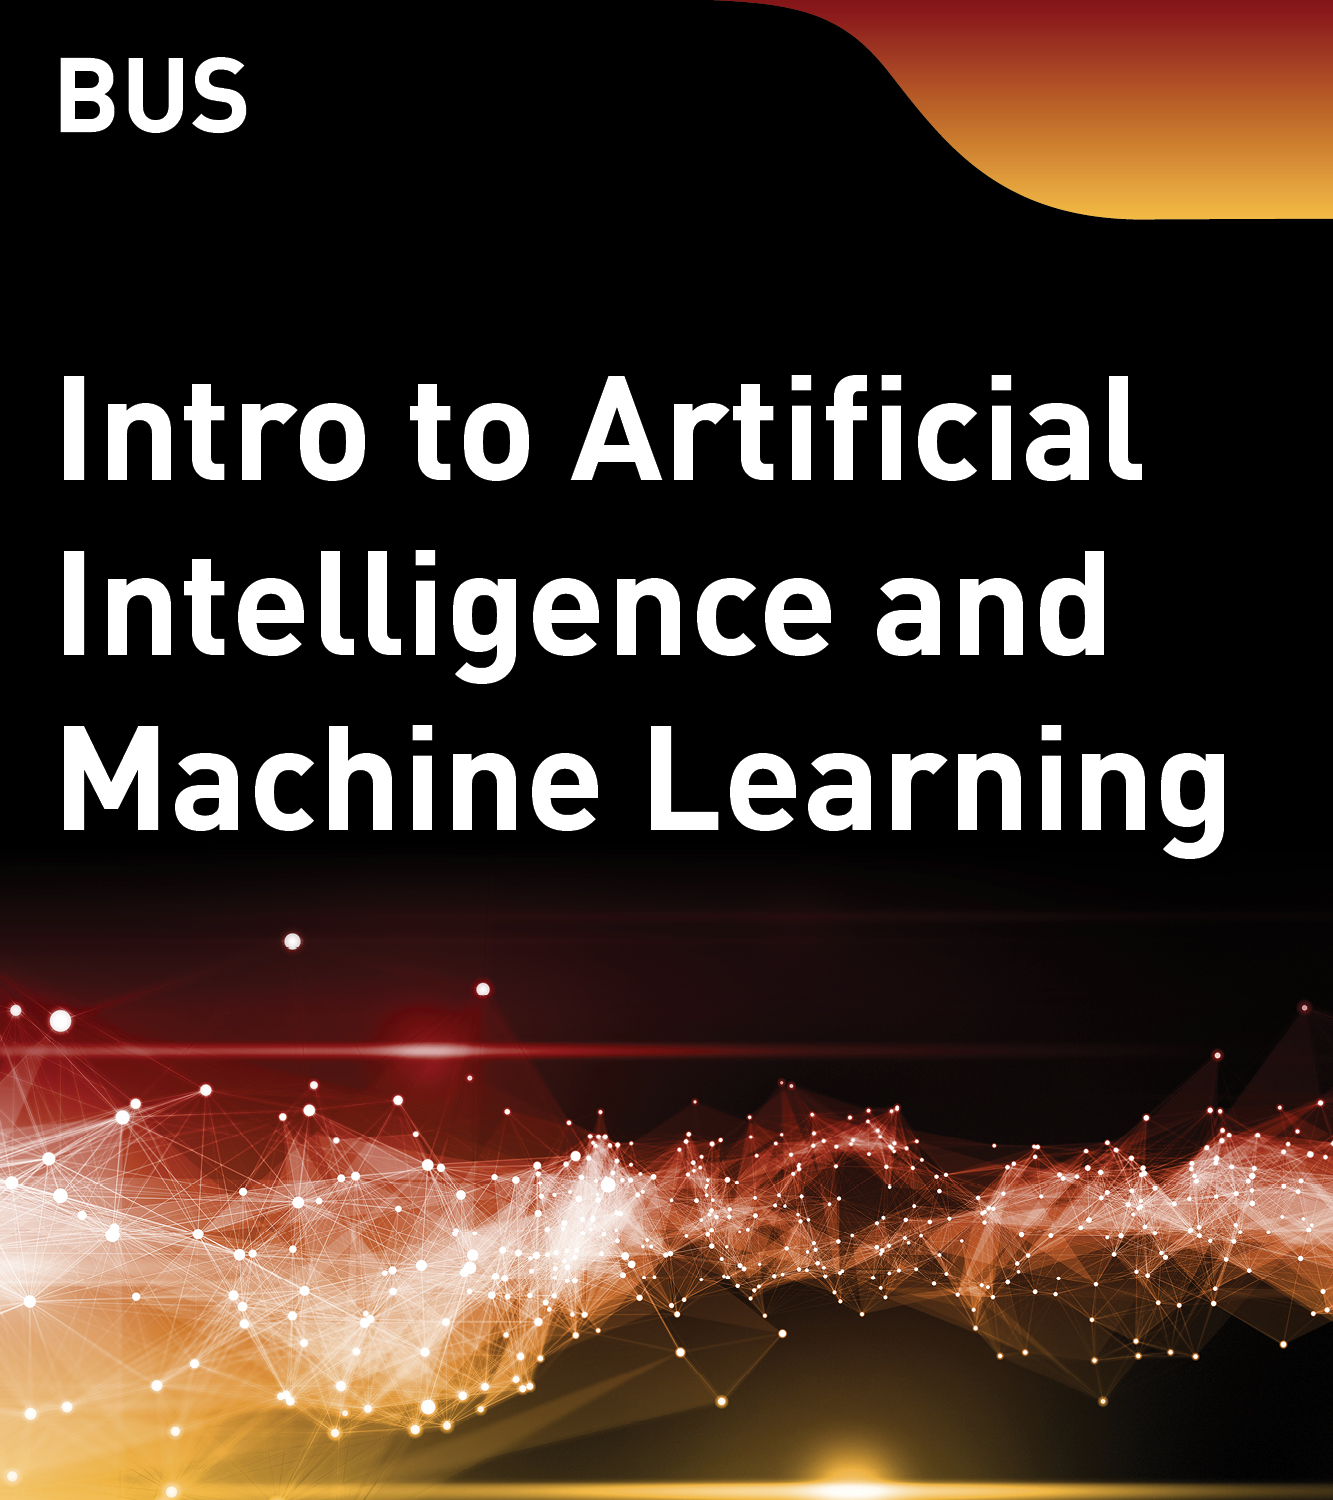 BUS - Introduction to Artificial Intelligence and Machine Learning